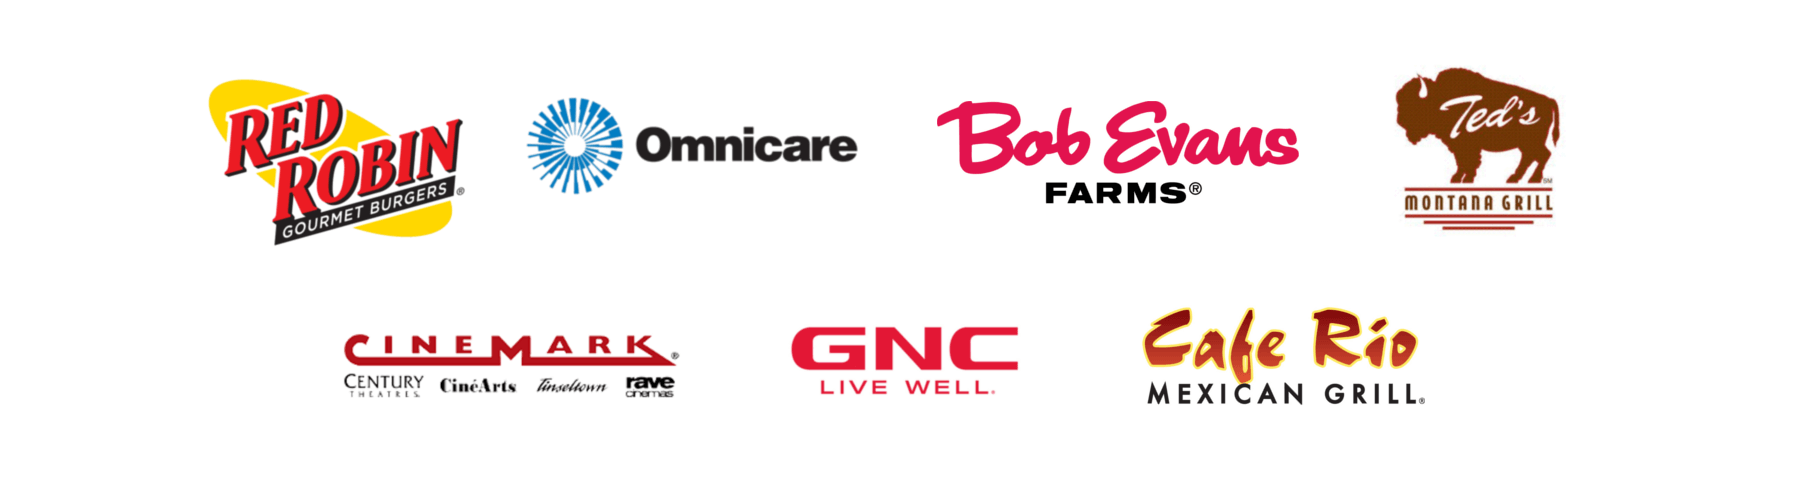 Red Robin, Omnicare, Bob Evans Farms, Ted's Montana Grill, Cinemark, GNC, Cafe Rio Mexican Grill